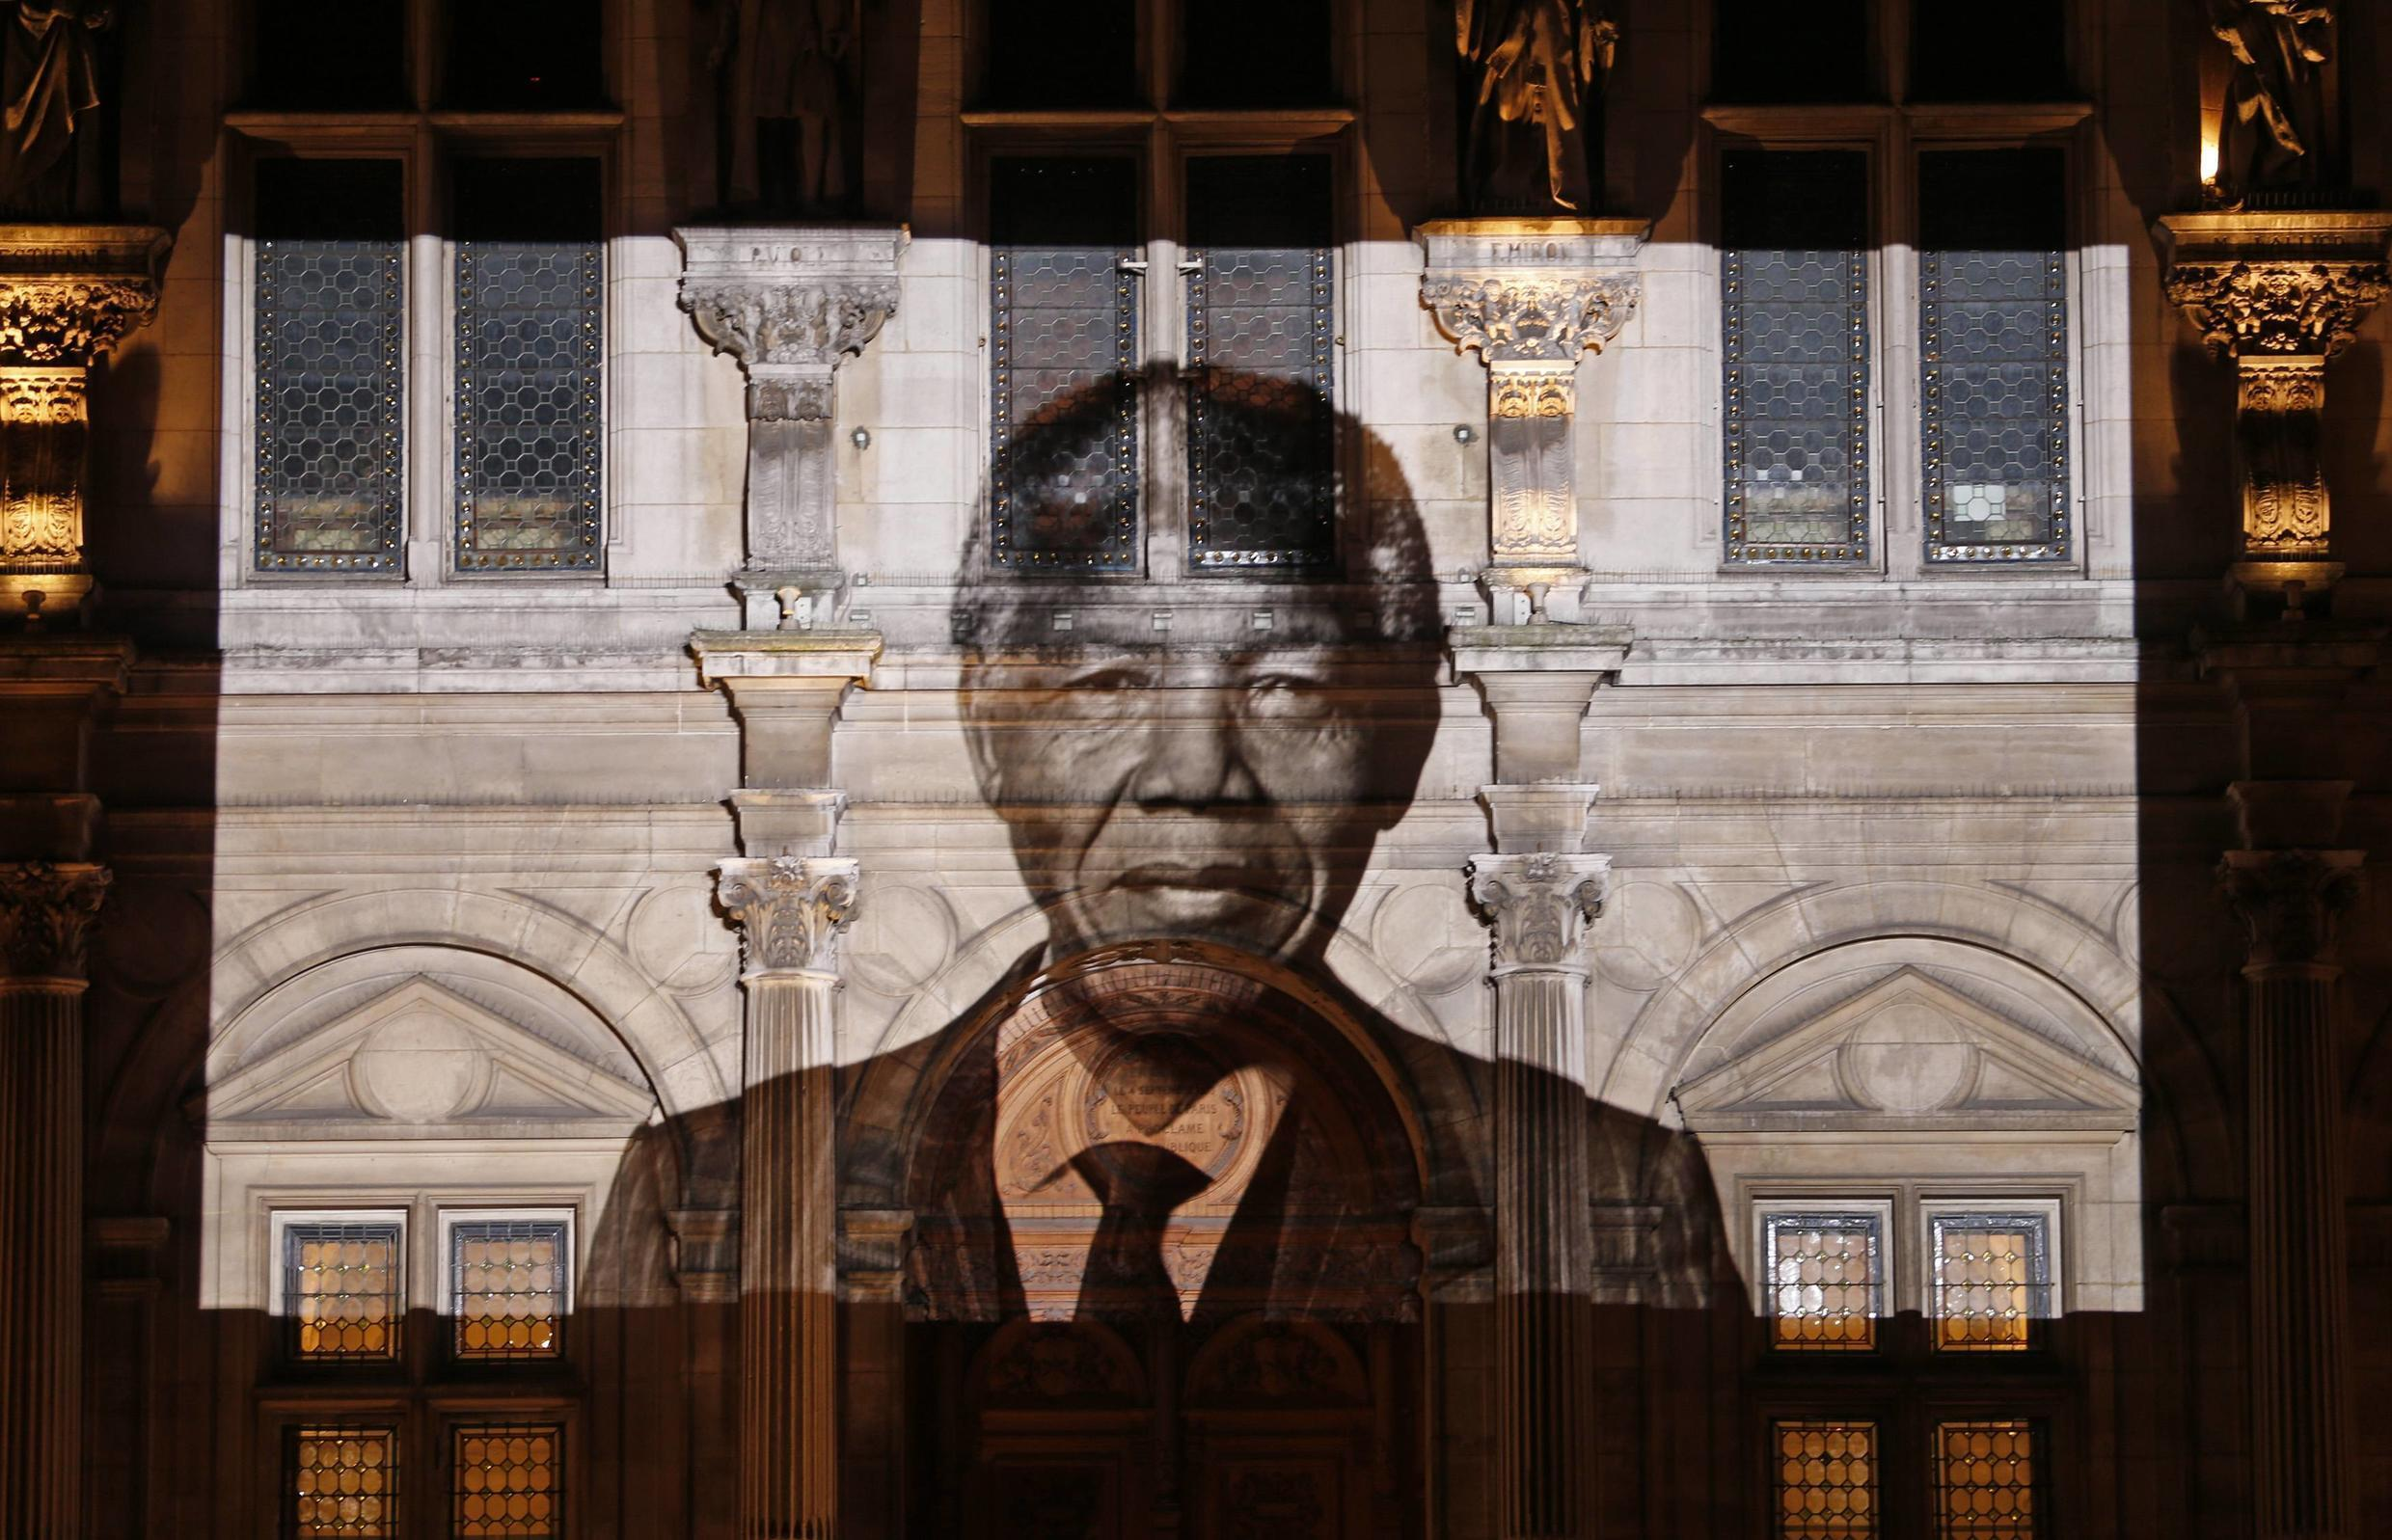 Nelson Mandela emerged from more than 25 years of prison to become South Africa's first black president.